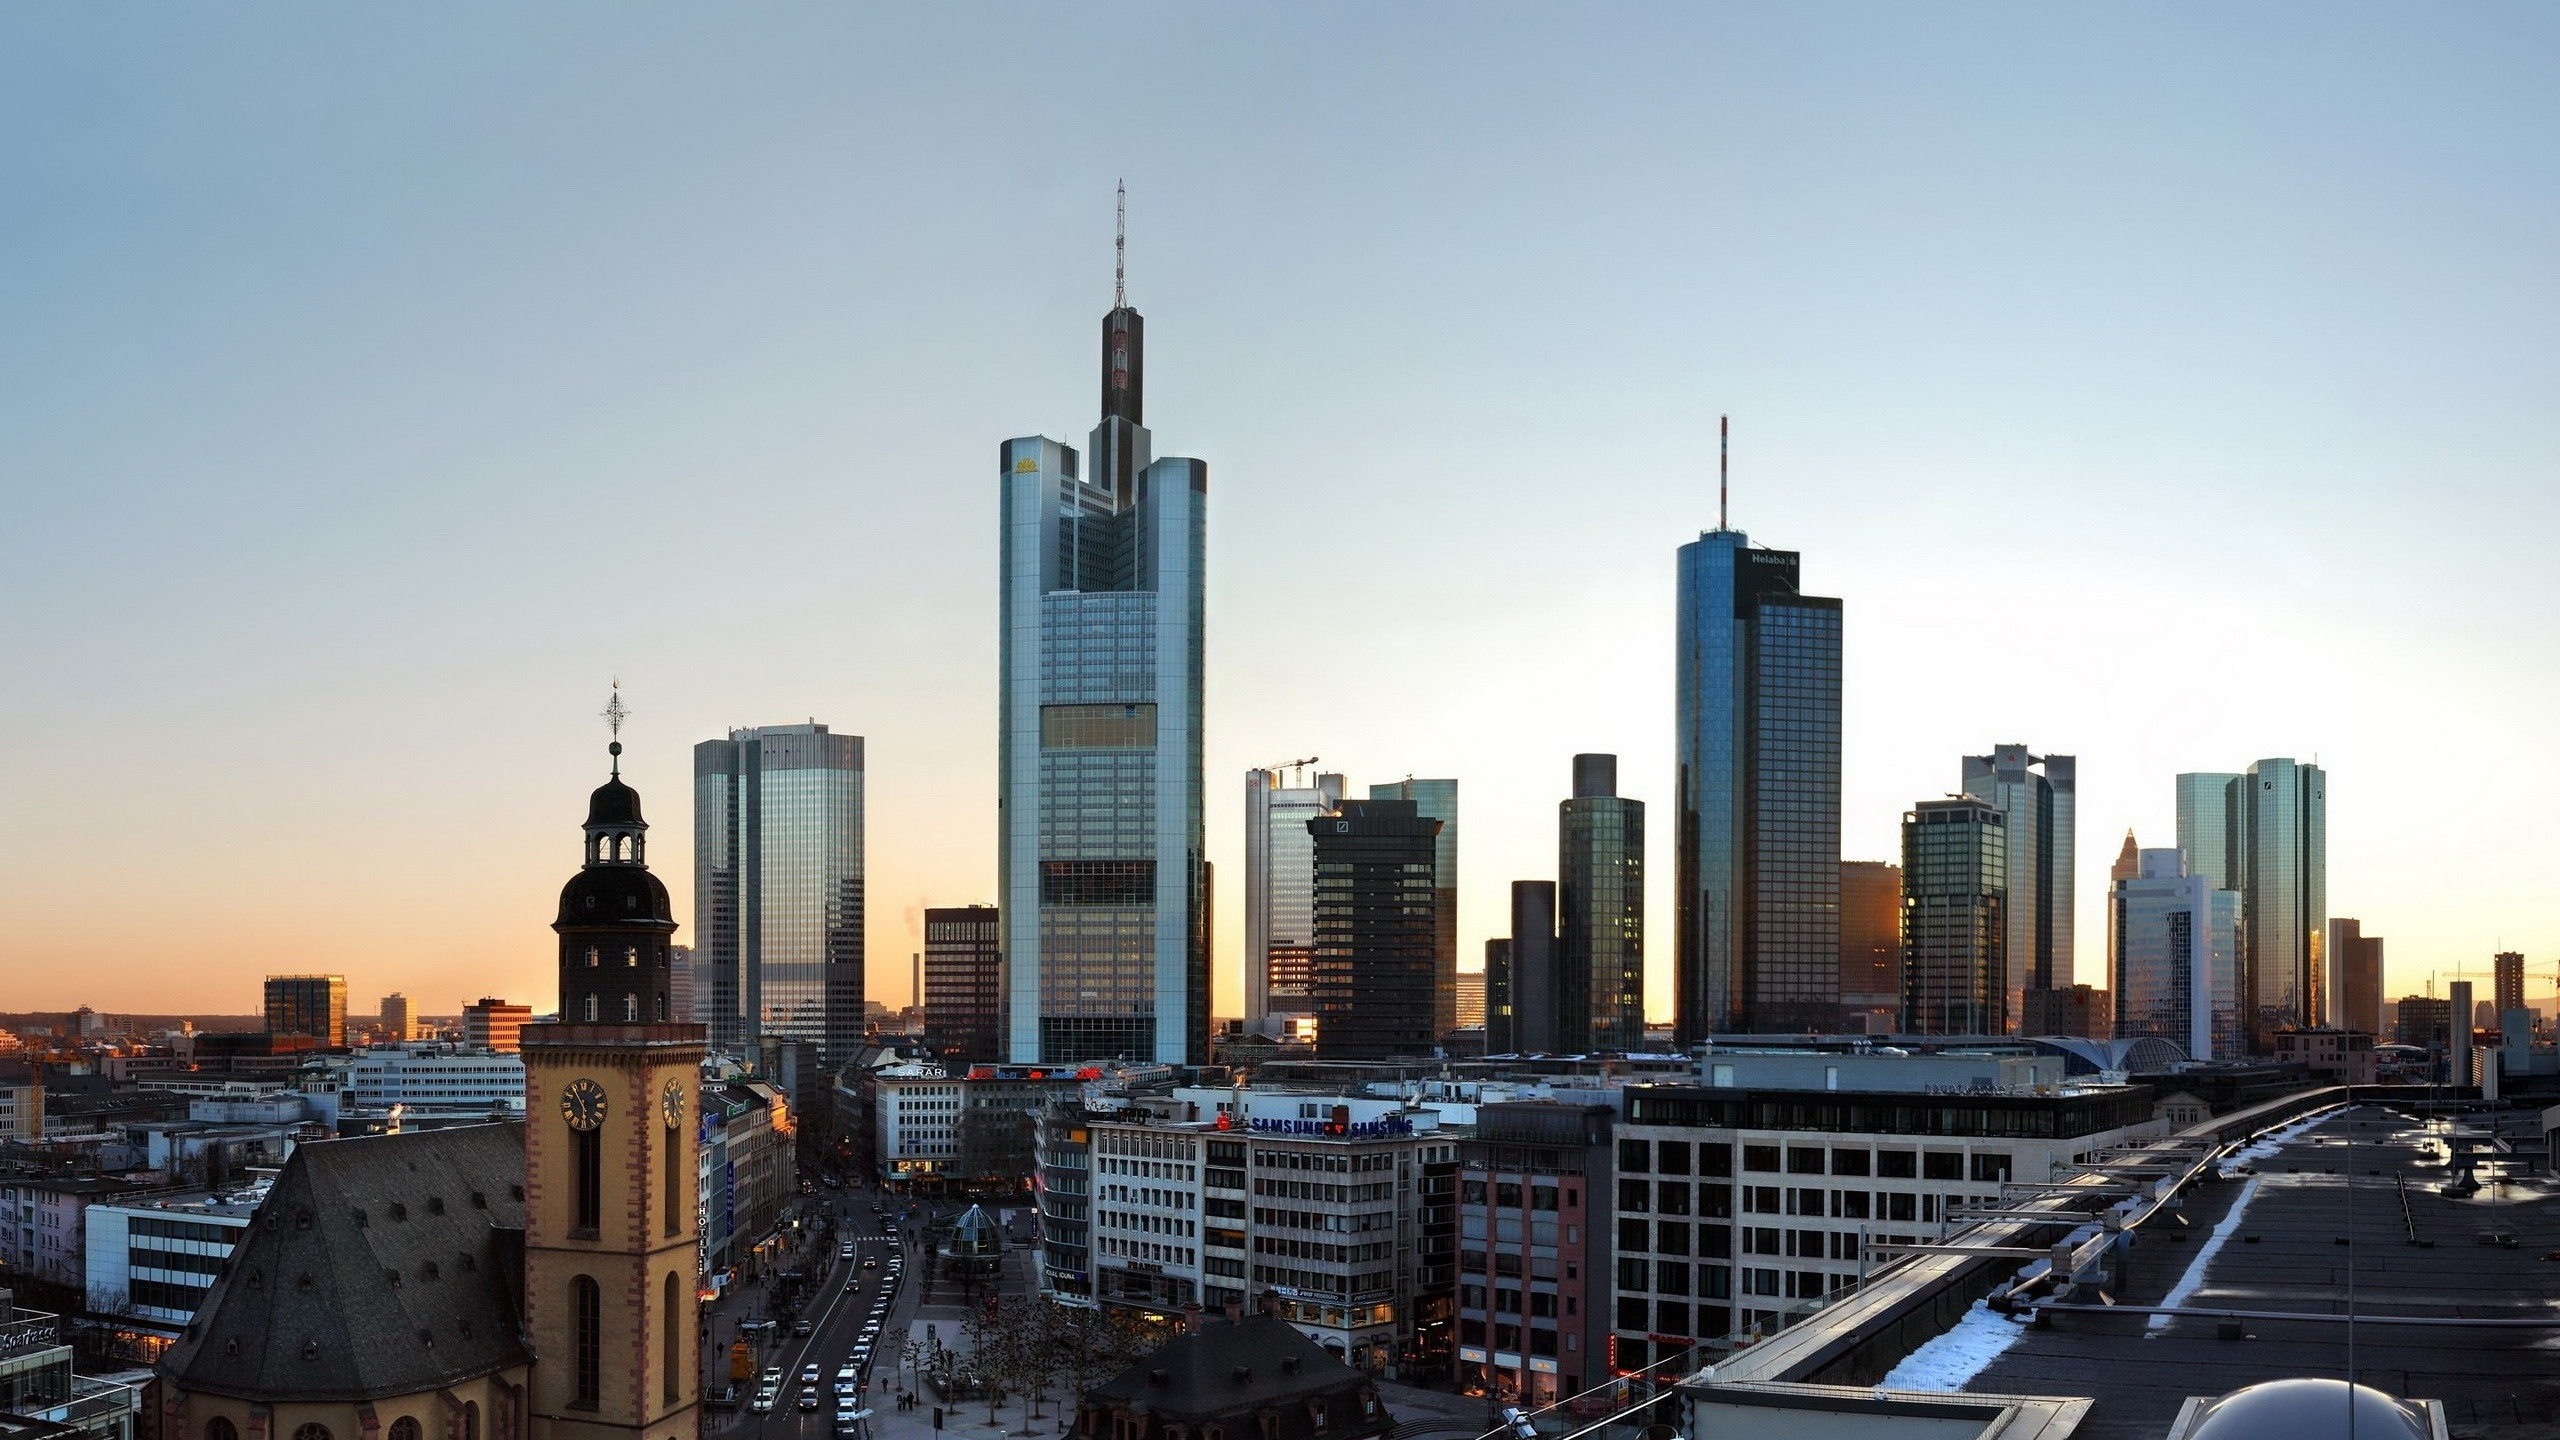 Frankfurt Skyscrapers Mac Wallpaper Download | Free Mac ...